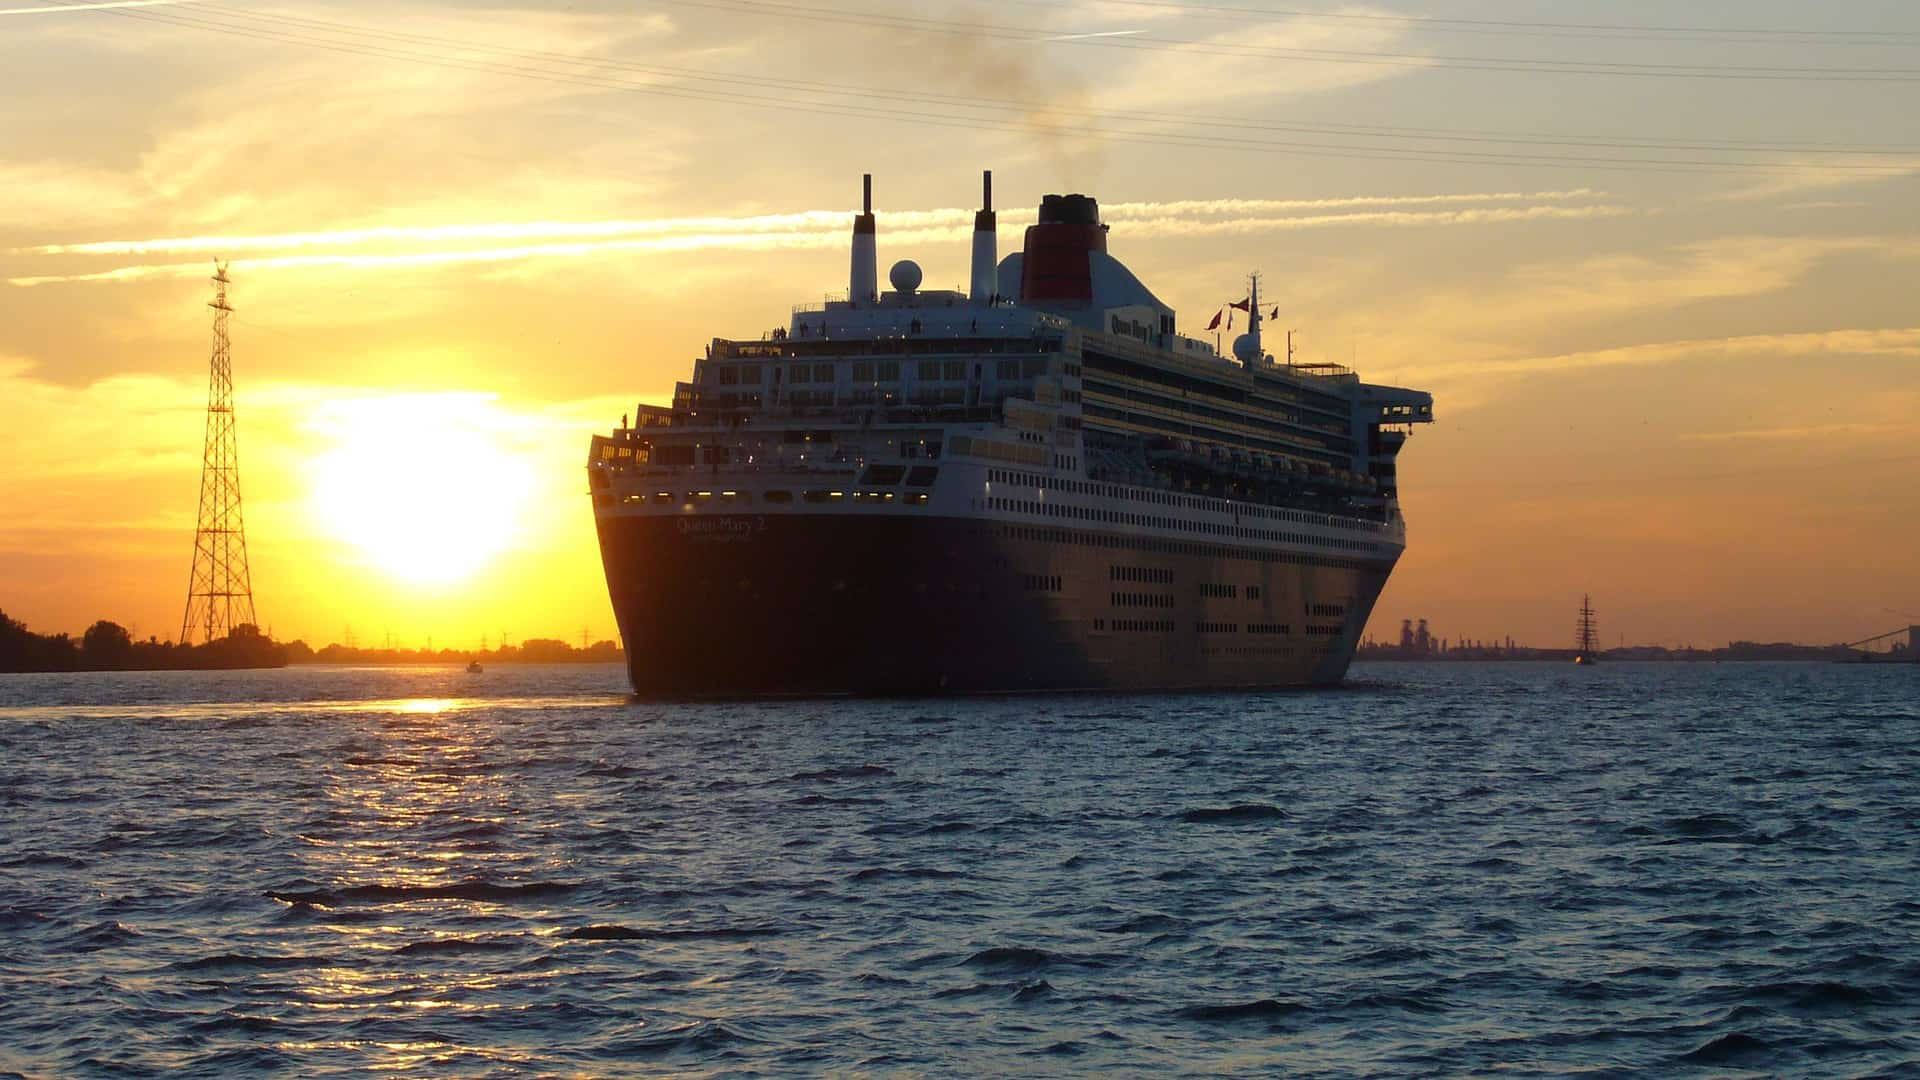 Sunset with Queen Mary 2